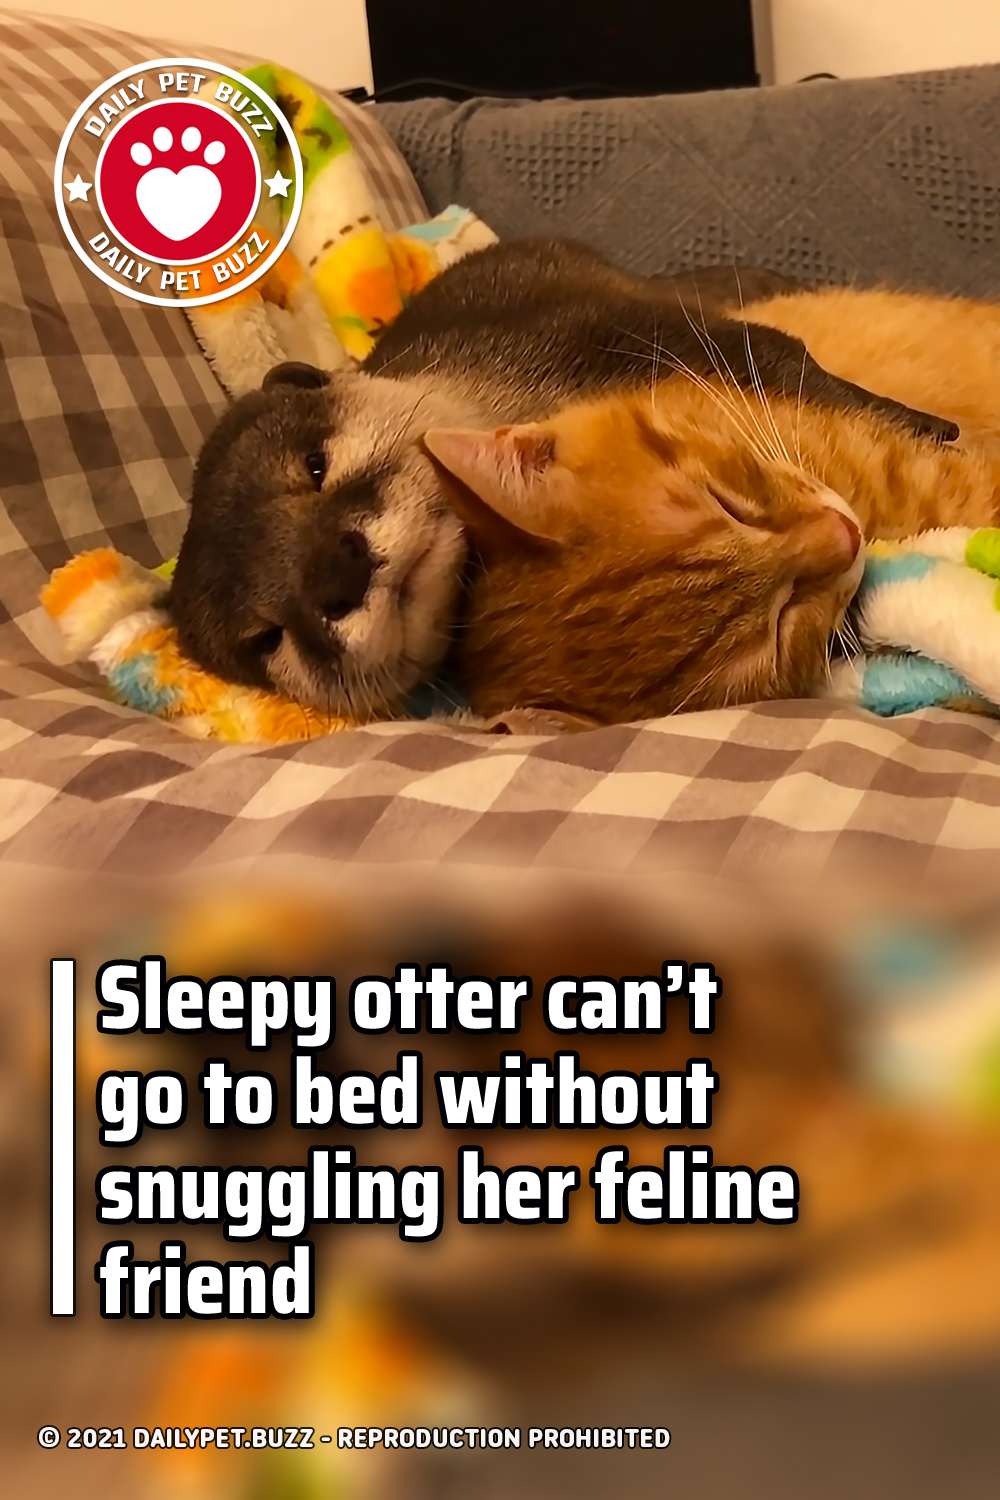 Sleepy otter can't go to bed without snuggling her feline friend